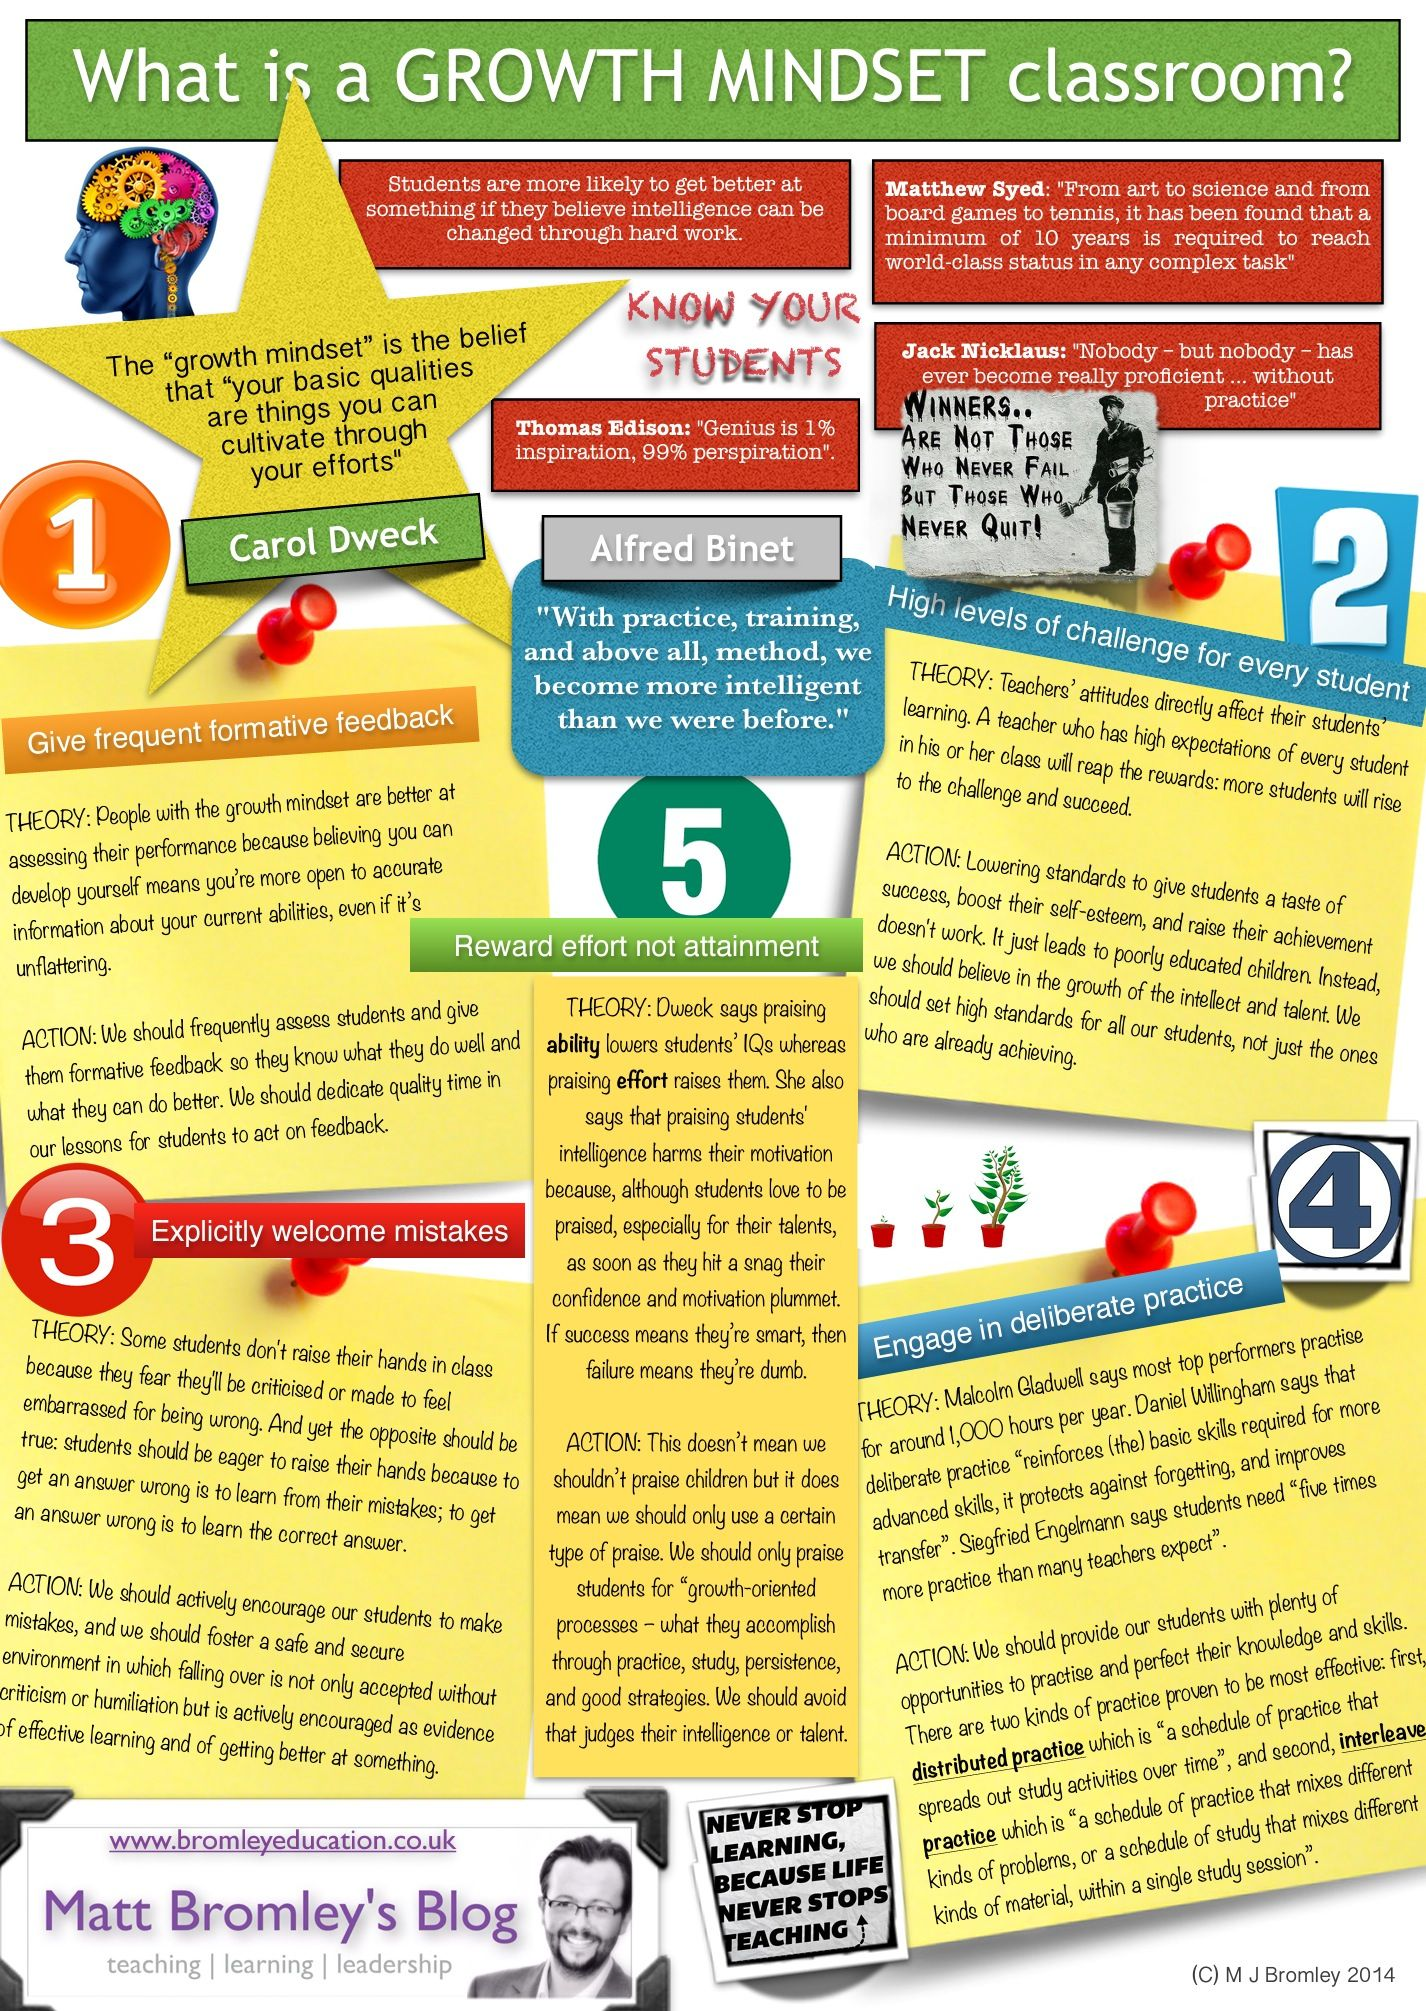 Developing A Growth Mindset In The Classroom